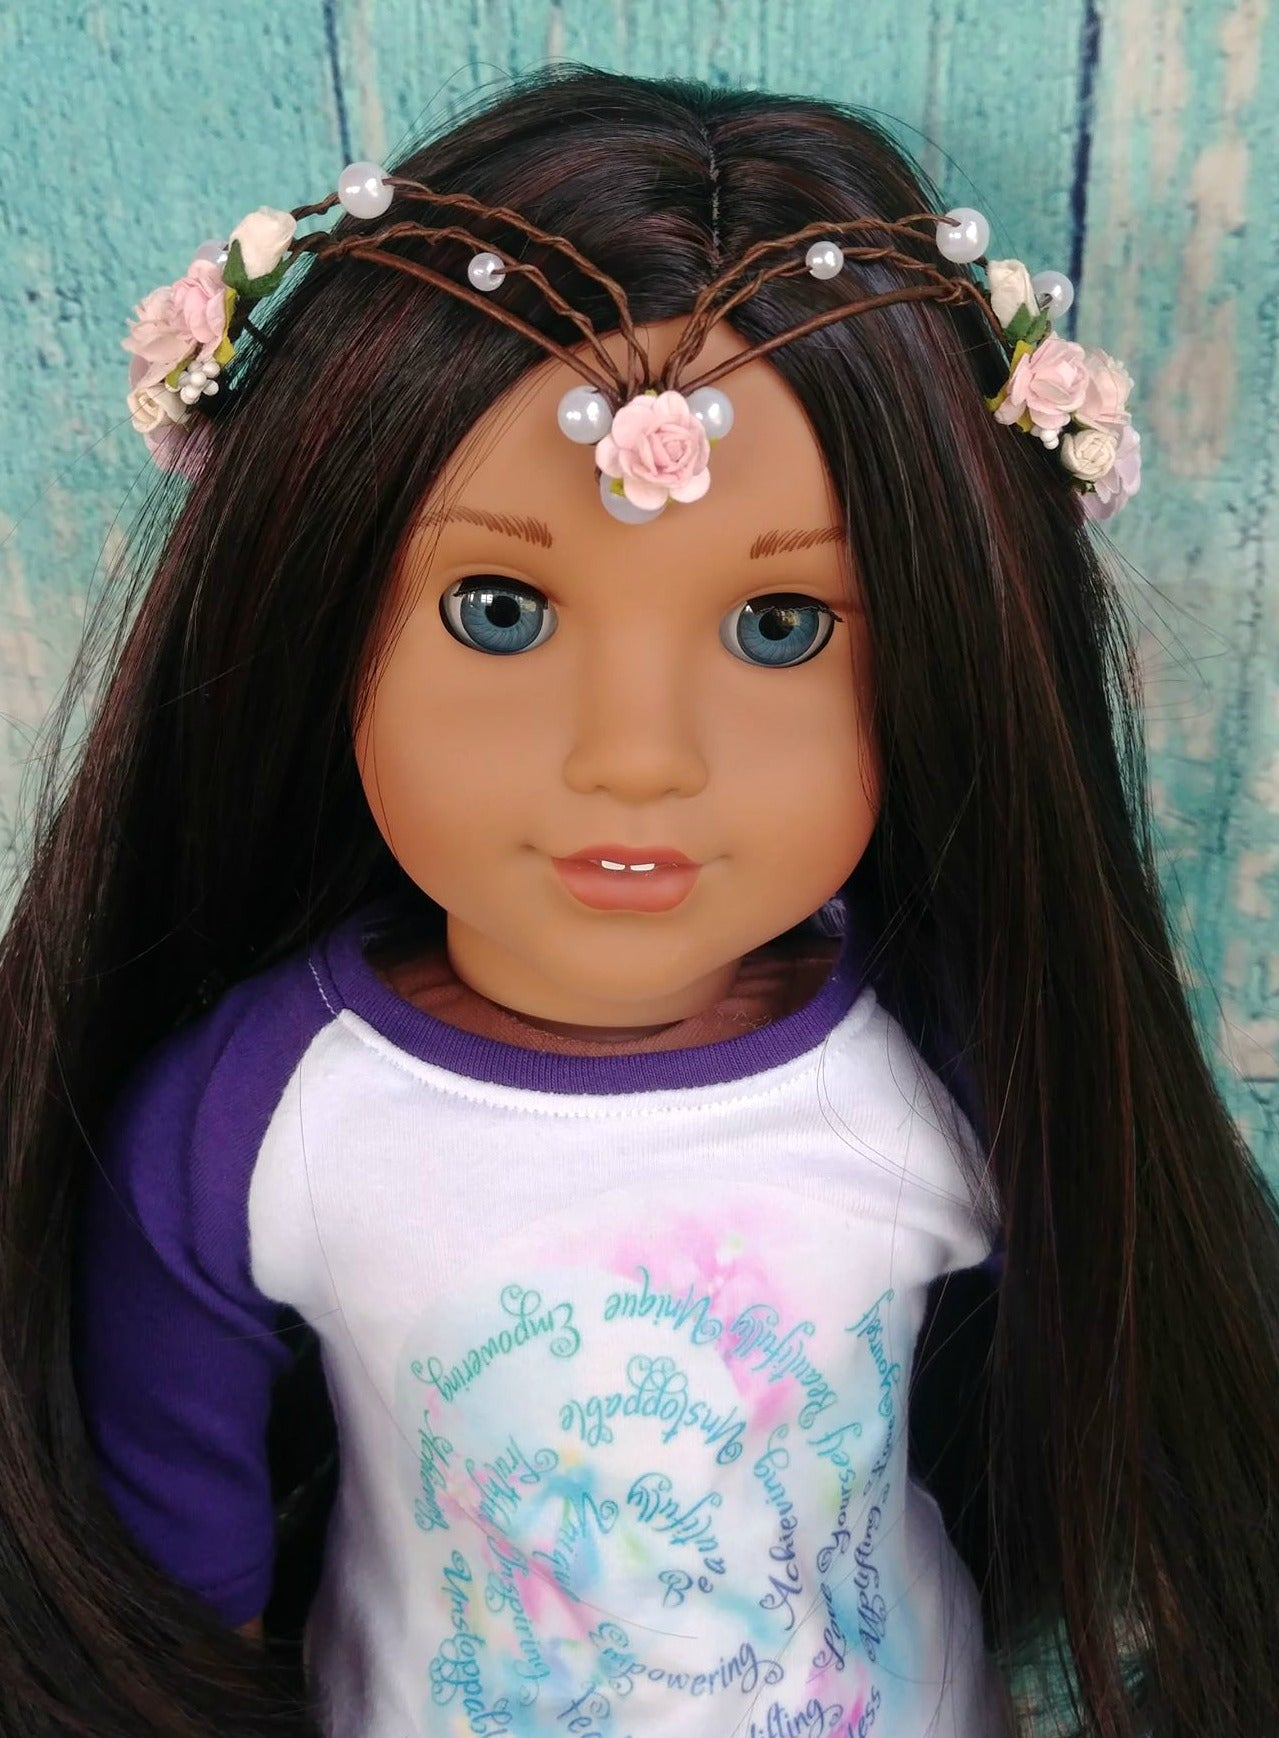 Zazou Dolls Exclusive Elven headband for 18 Inch dolls such as Journey, OG and American Girl